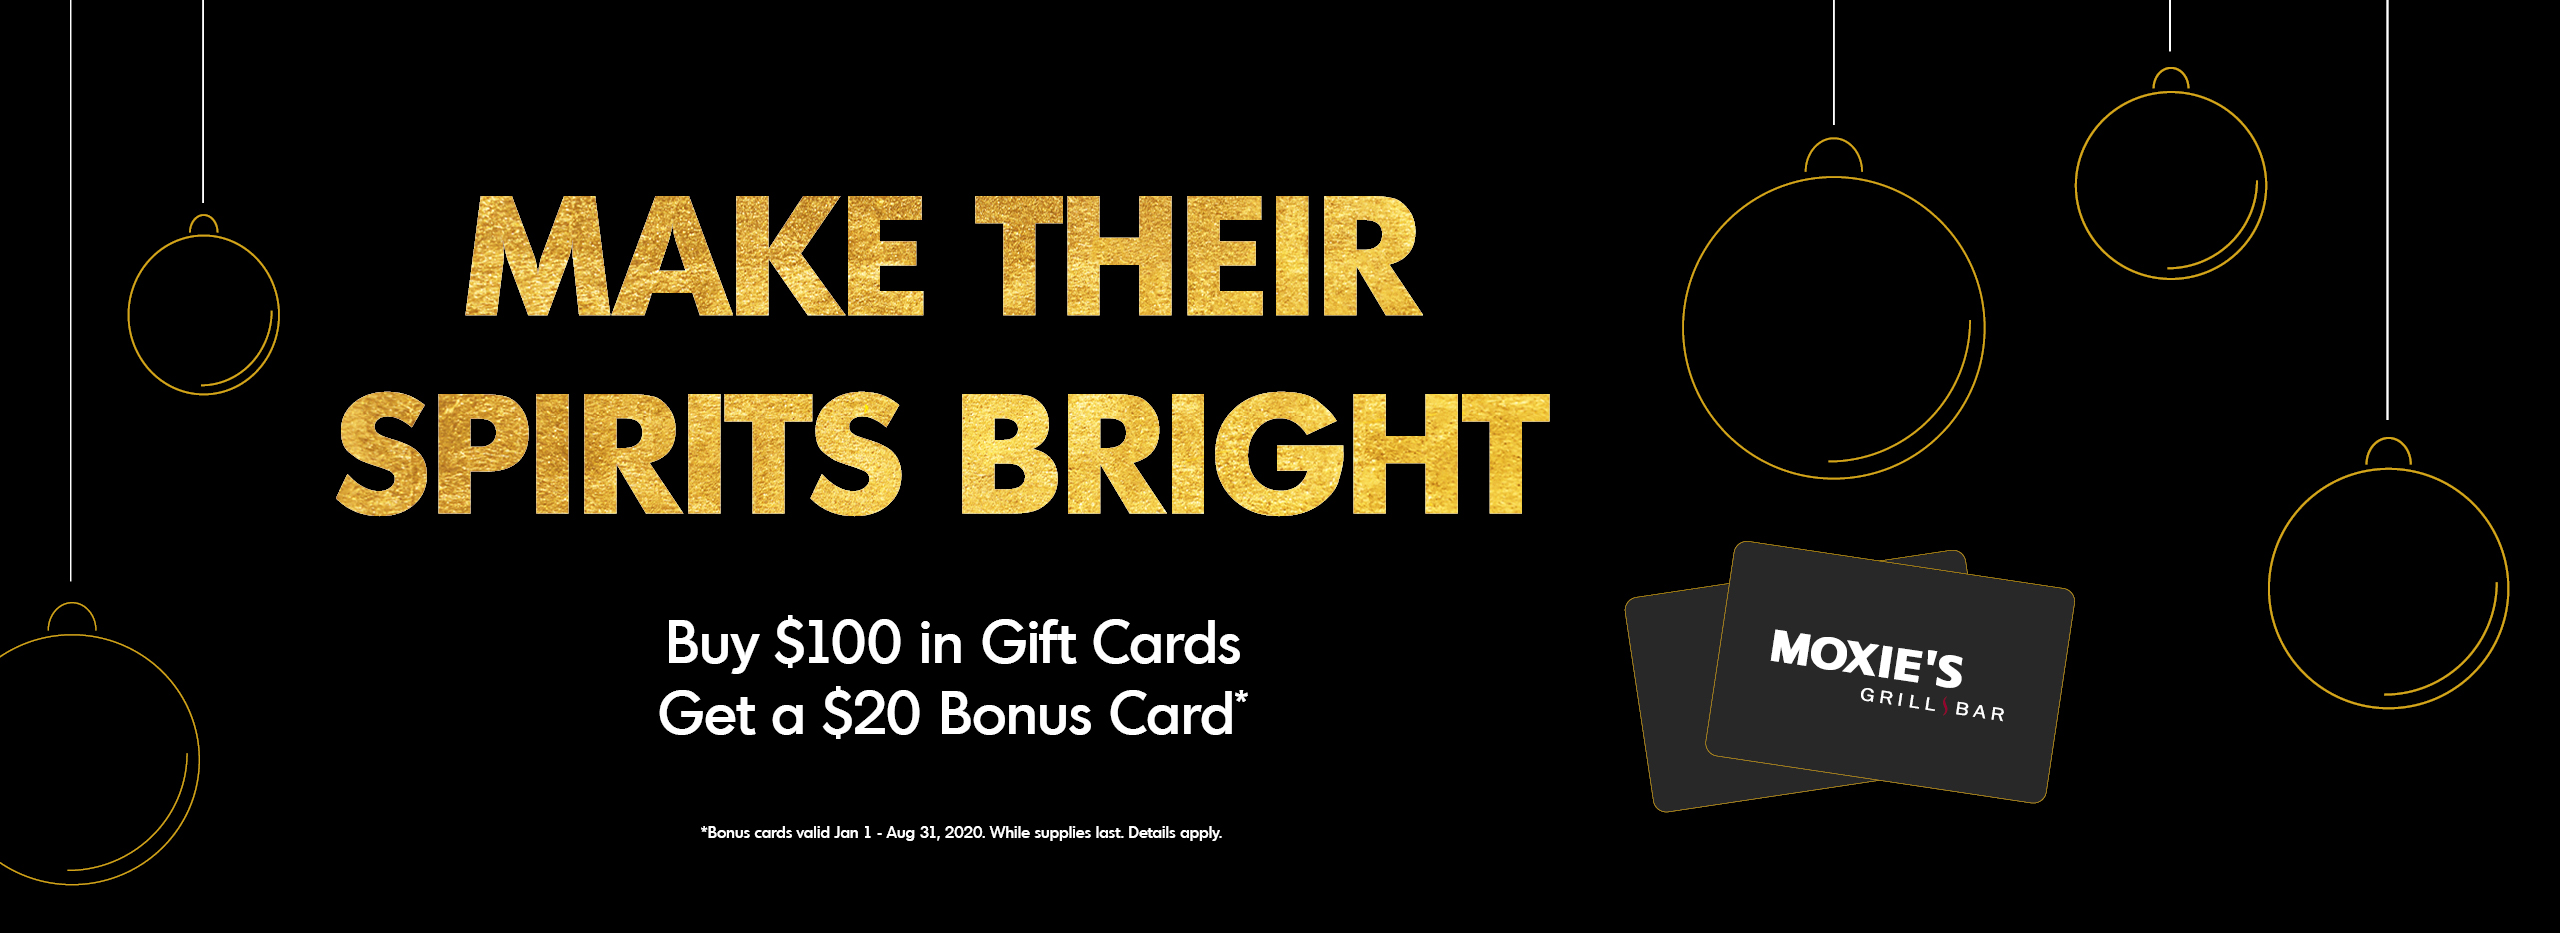 Buy $100 in gift cards and get $20 bonus cards